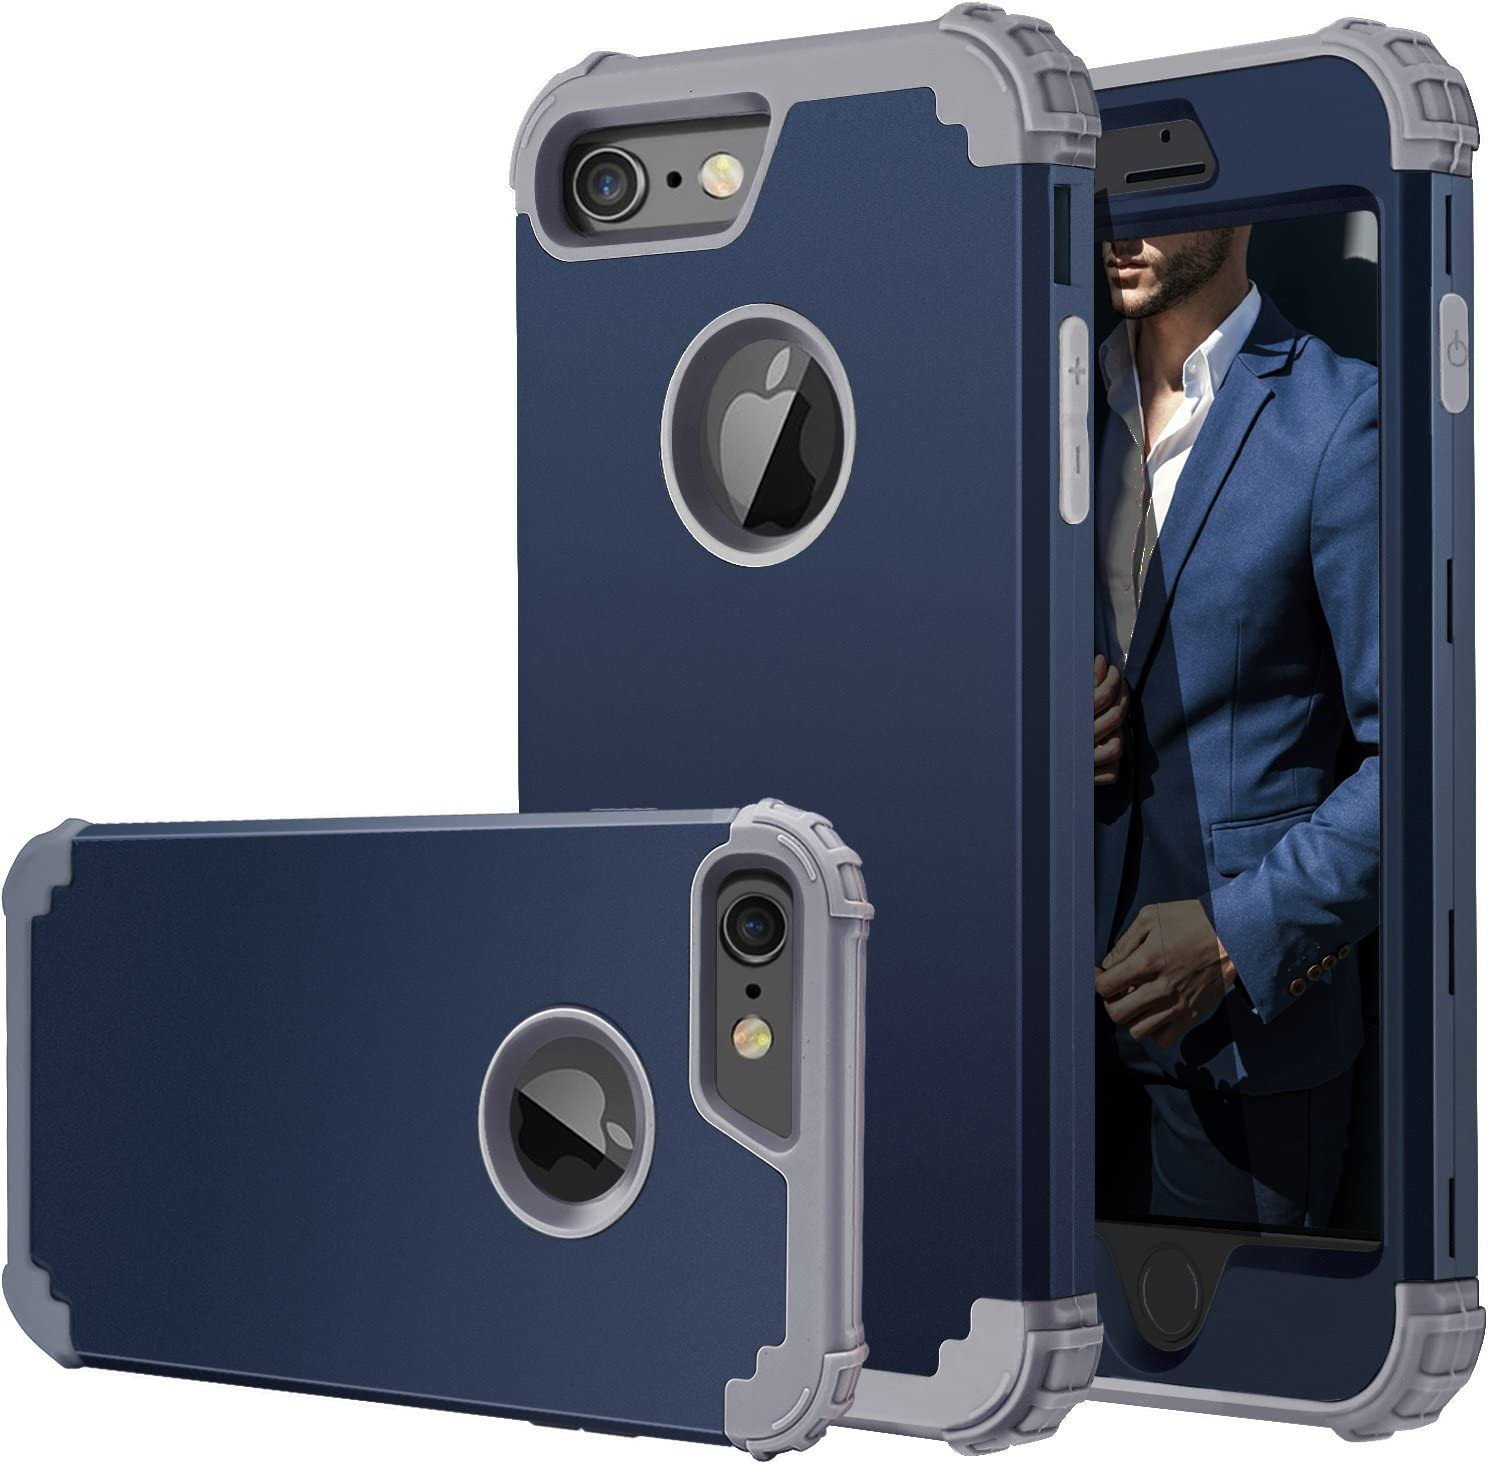 iPhone 6 Case,iPhone 6s Case,Fingic Full-Body Cover 3 in 1 Hybrid Hard PC & Soft Silicone Heavy Duty Rugged Bumper Shockproof Protective Phone Case for iPhone 6/6S (4.7 inch),Navy Blue+Gray